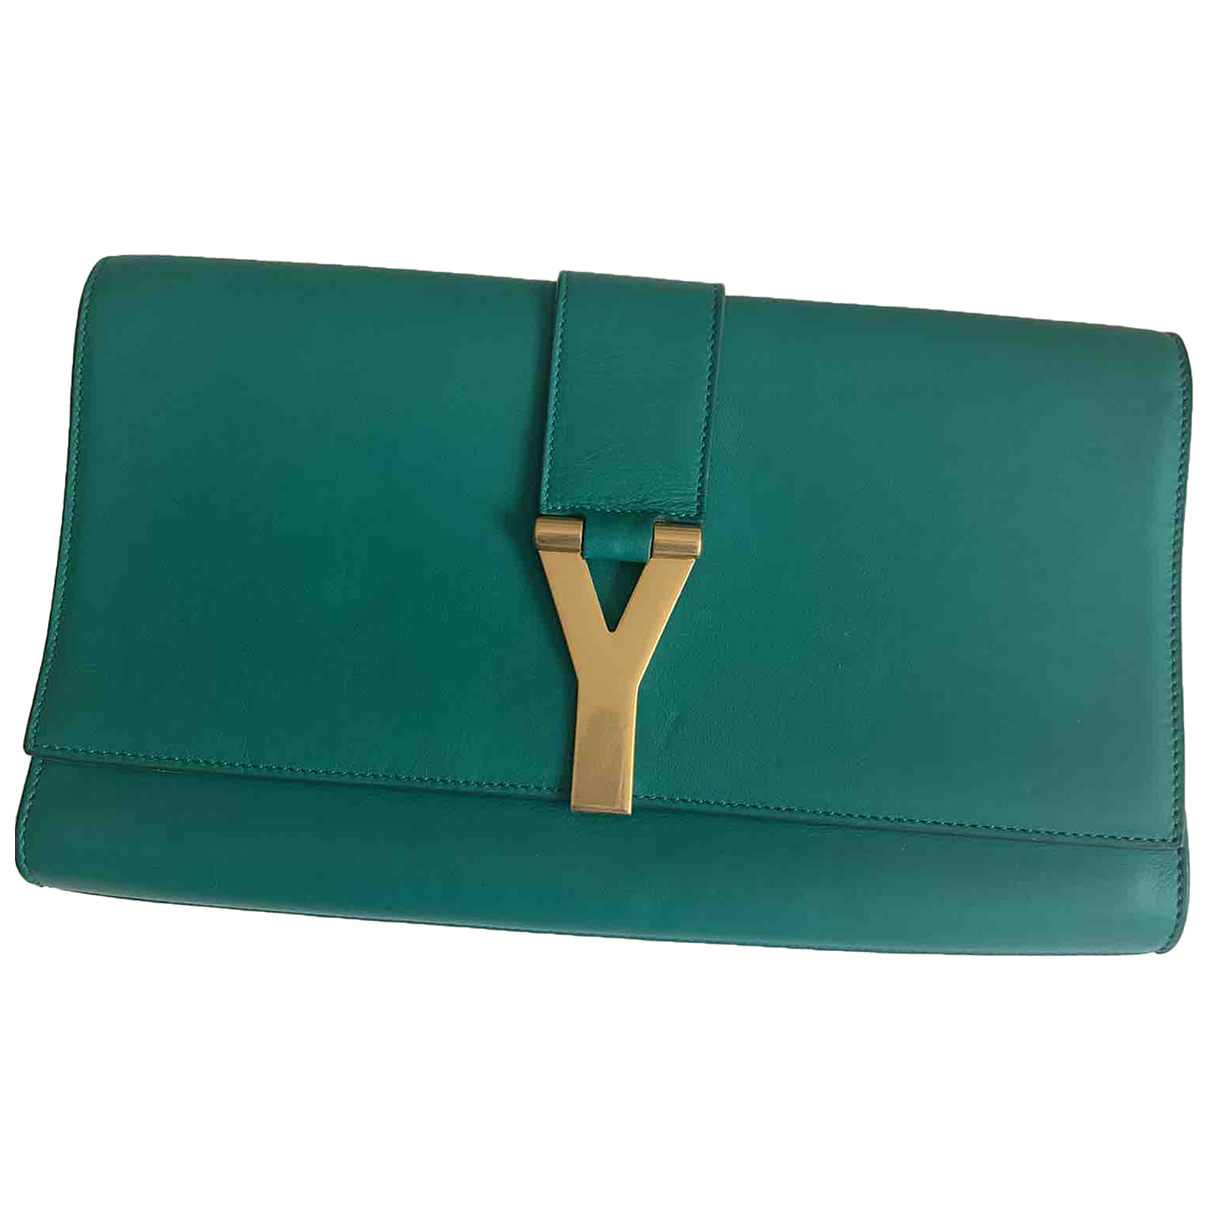 Saint Laurent Chyc Green Leather Clutch bag for Women \N